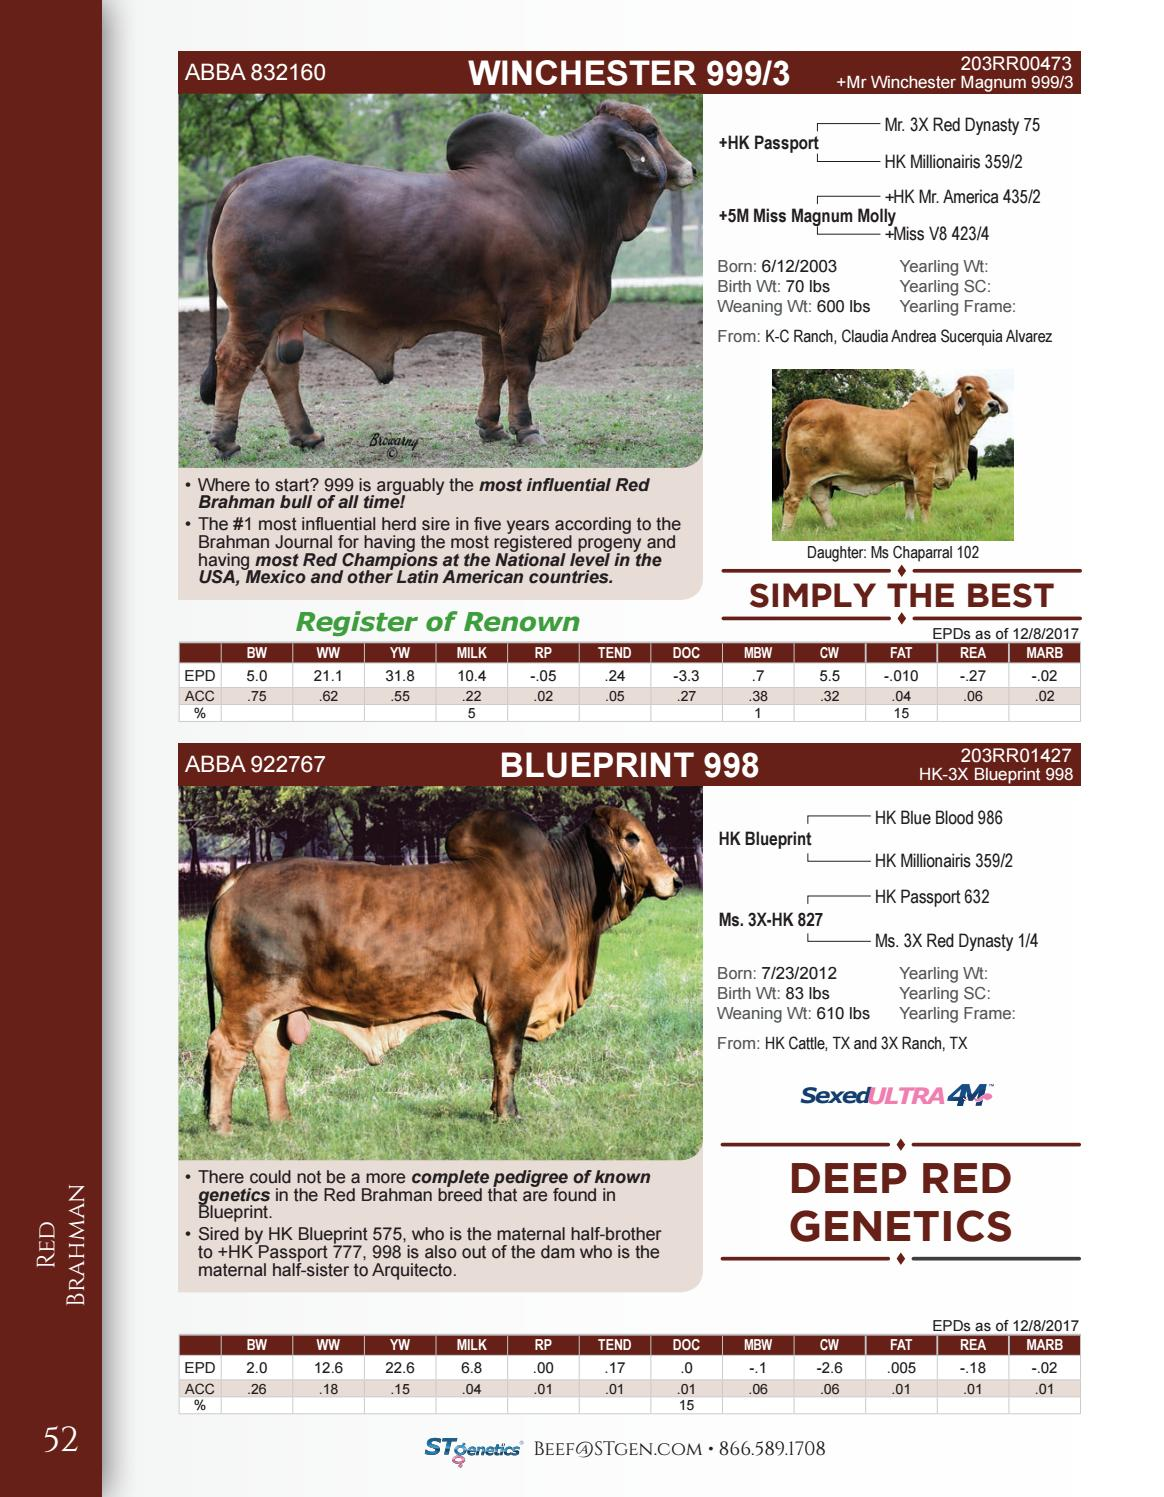 Stgenetics spring 2018 beef sire directory by stgenetics issuu malvernweather Image collections